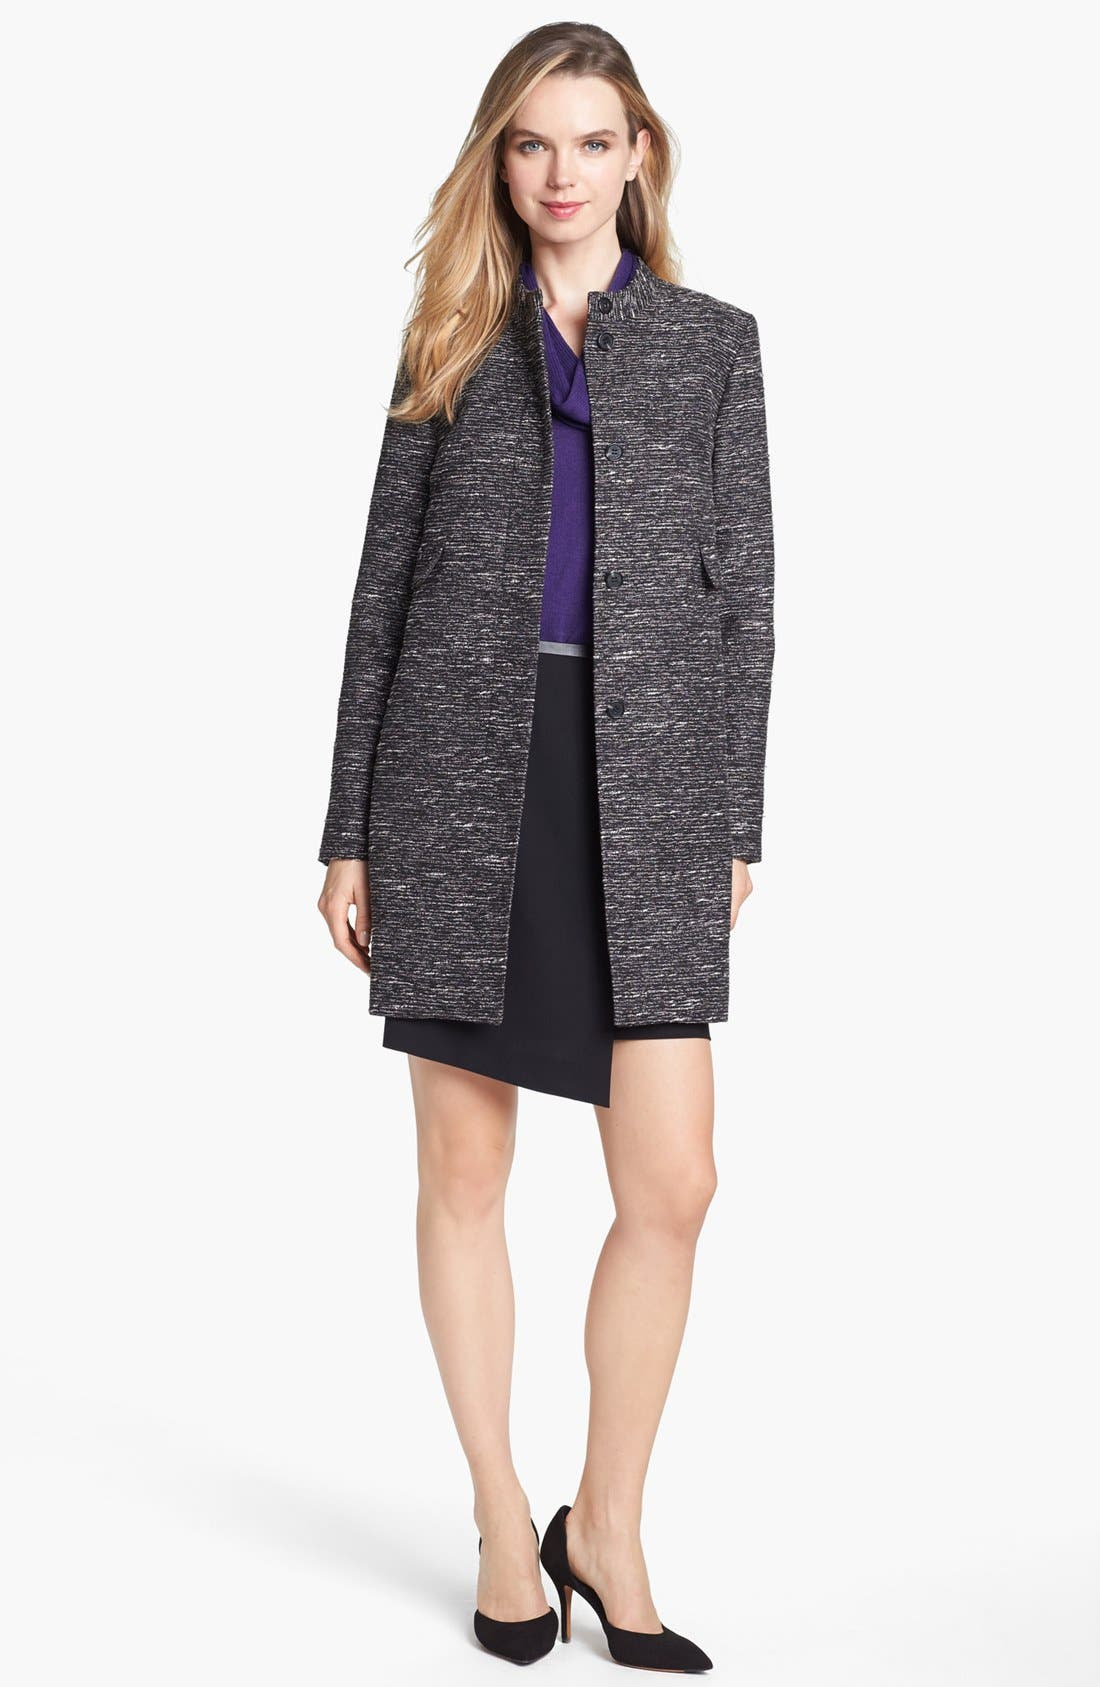 Alternate Image 1 Selected - Vince Camuto Metallic Tweed Topper